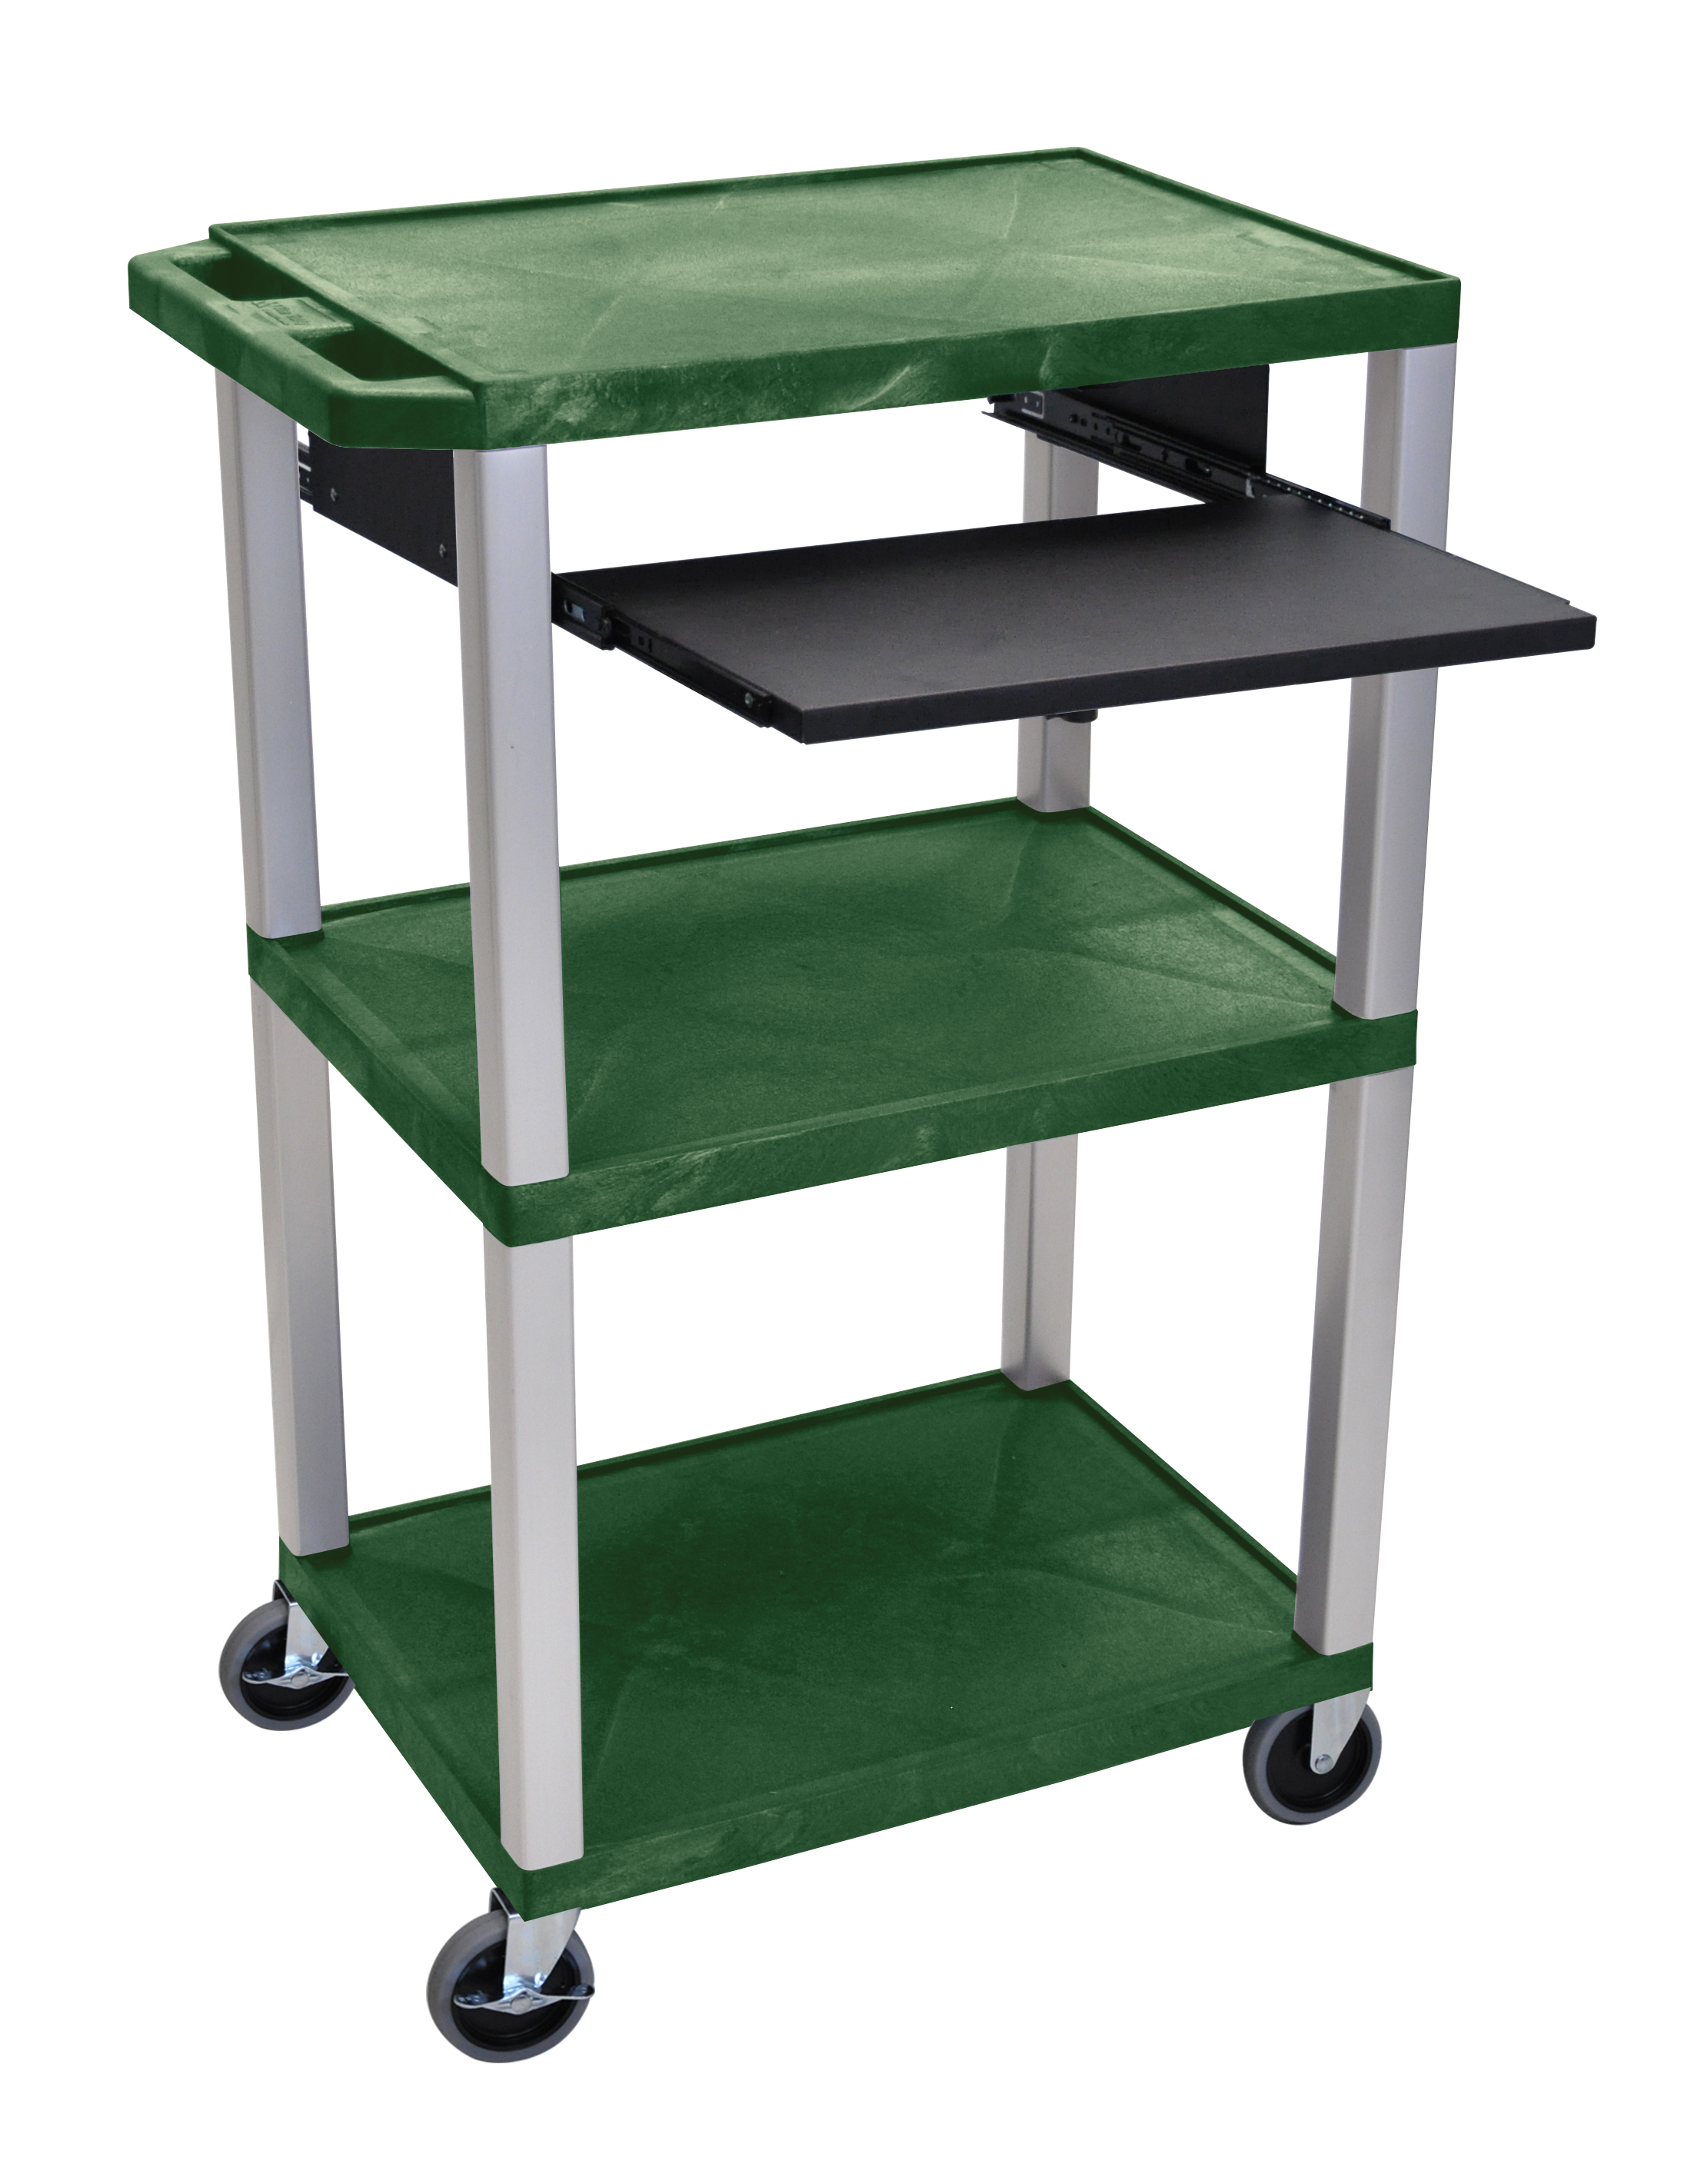 Offex Presentation Cart with Open Shelves and Pull Out Tray Hunter Green and Nickel